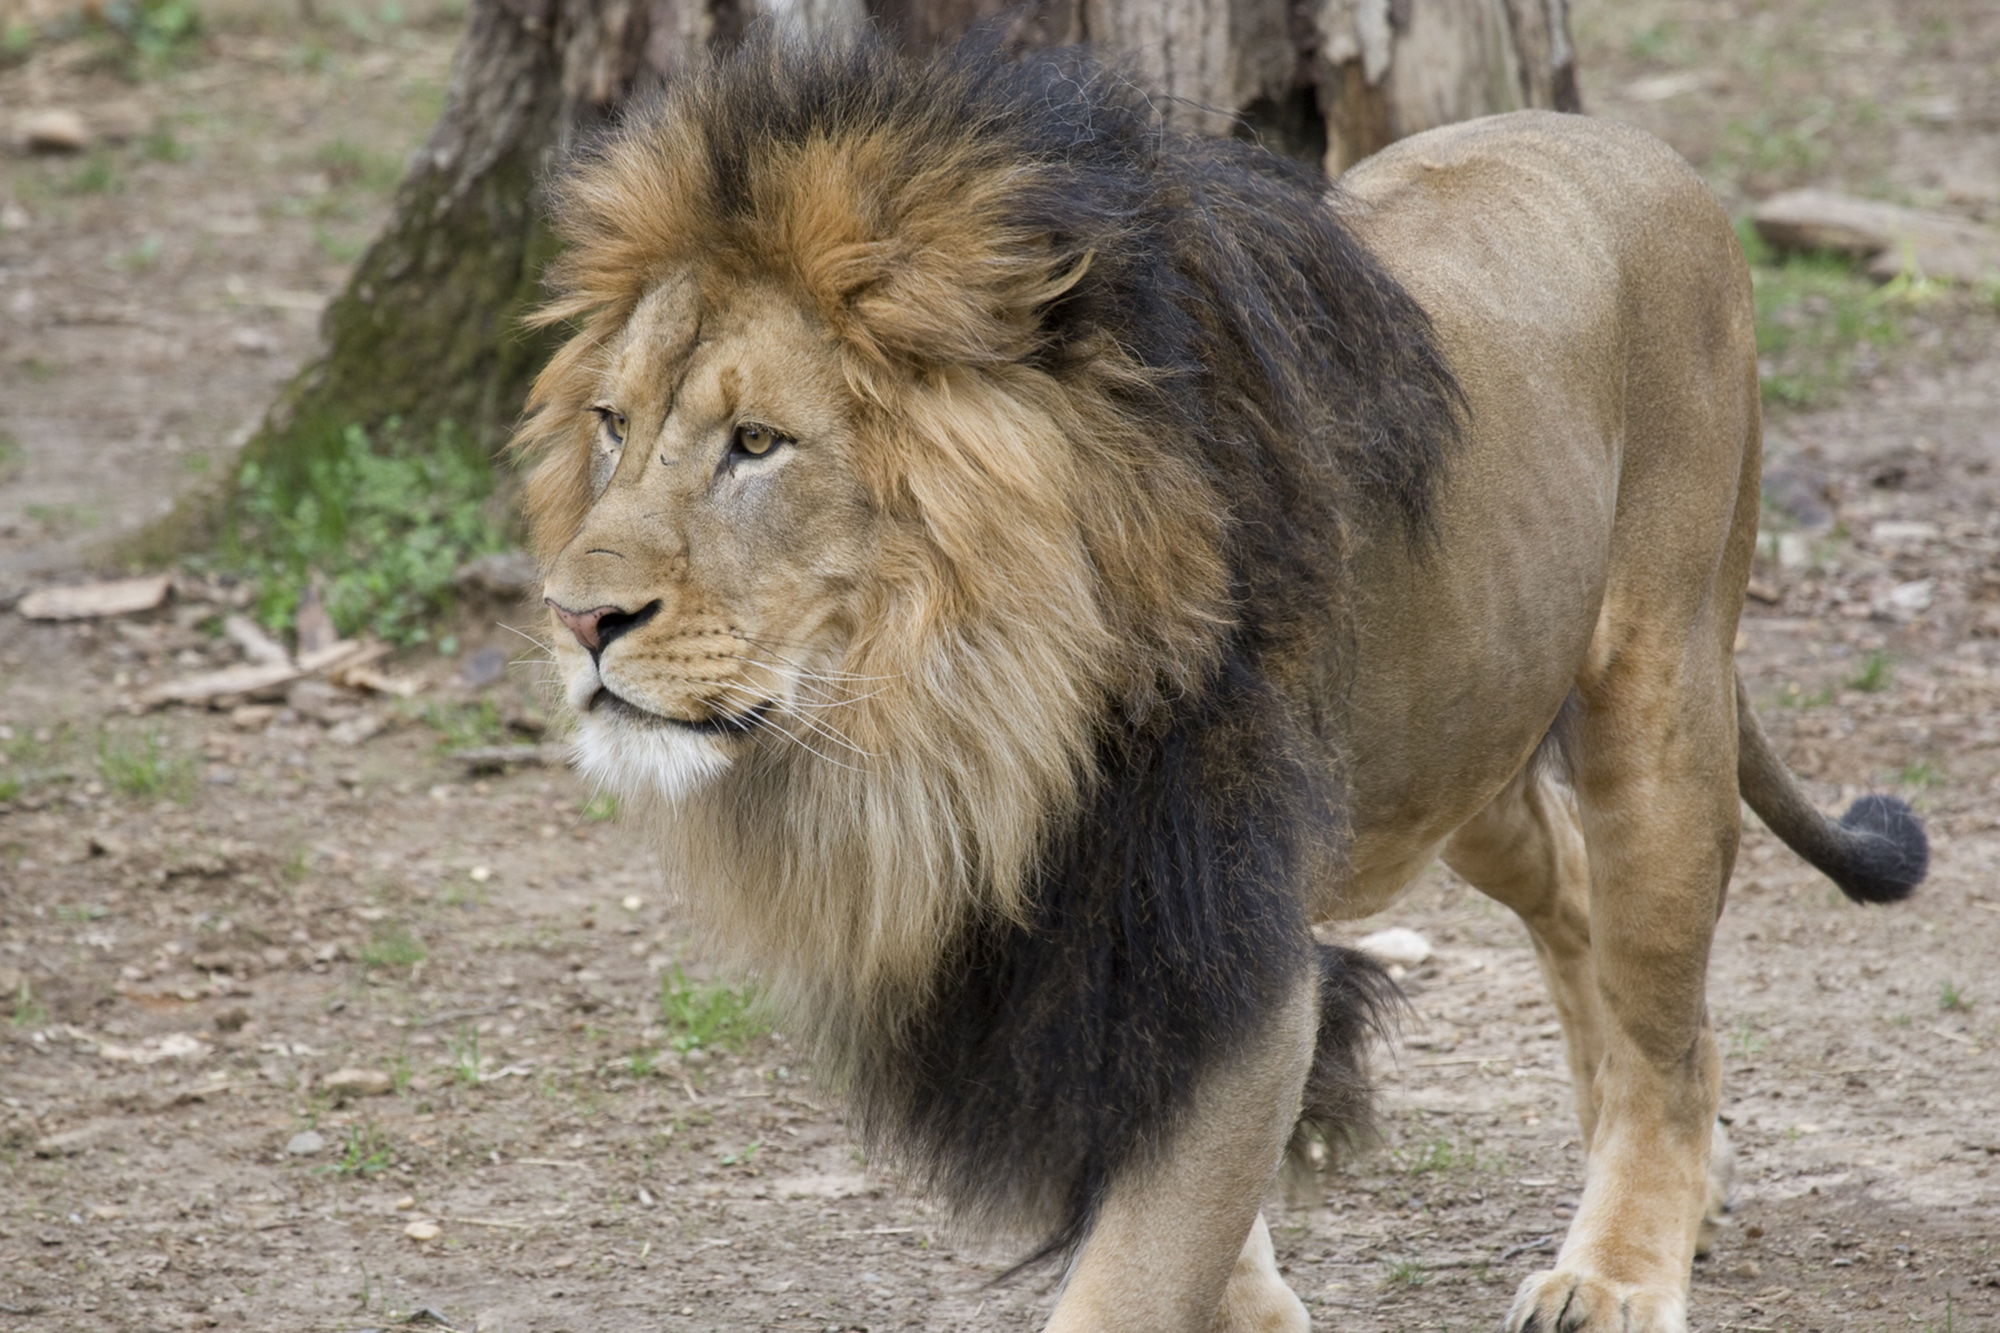 VIDEO: Feline Poorly: Lions And Tigers Struck Down With COVID